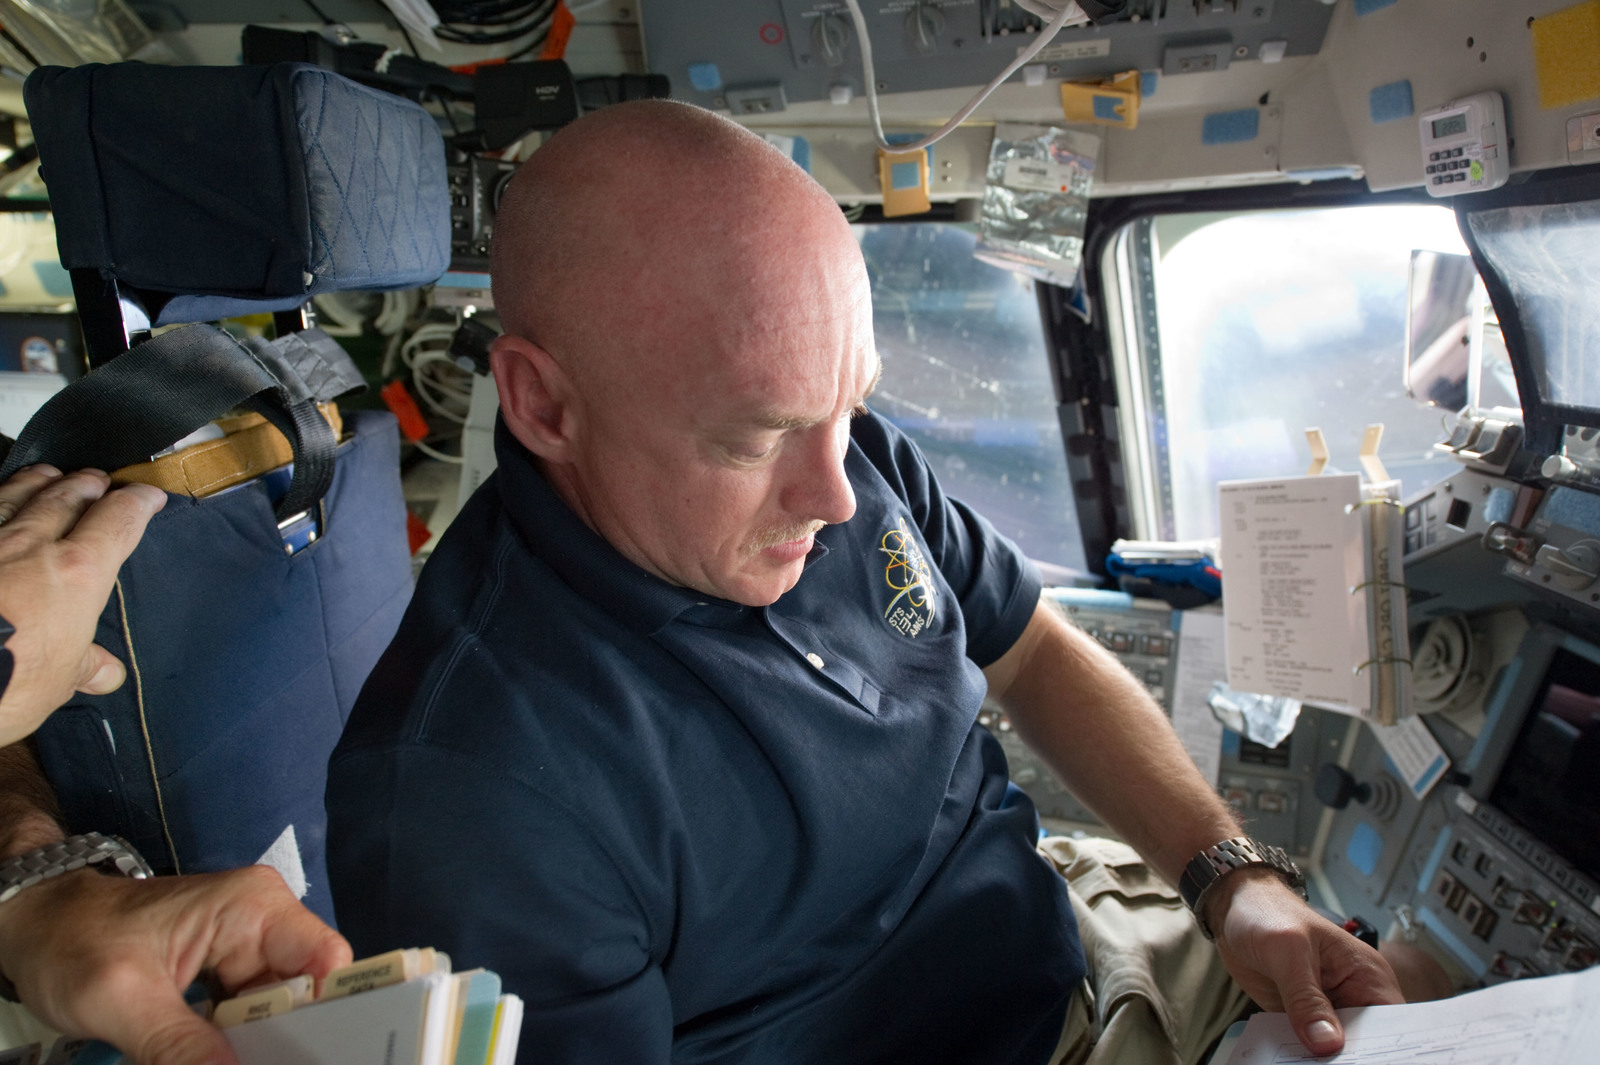 S134E006539 - STS-134 - STS-134 Commander Kelly working on the Flight Deck